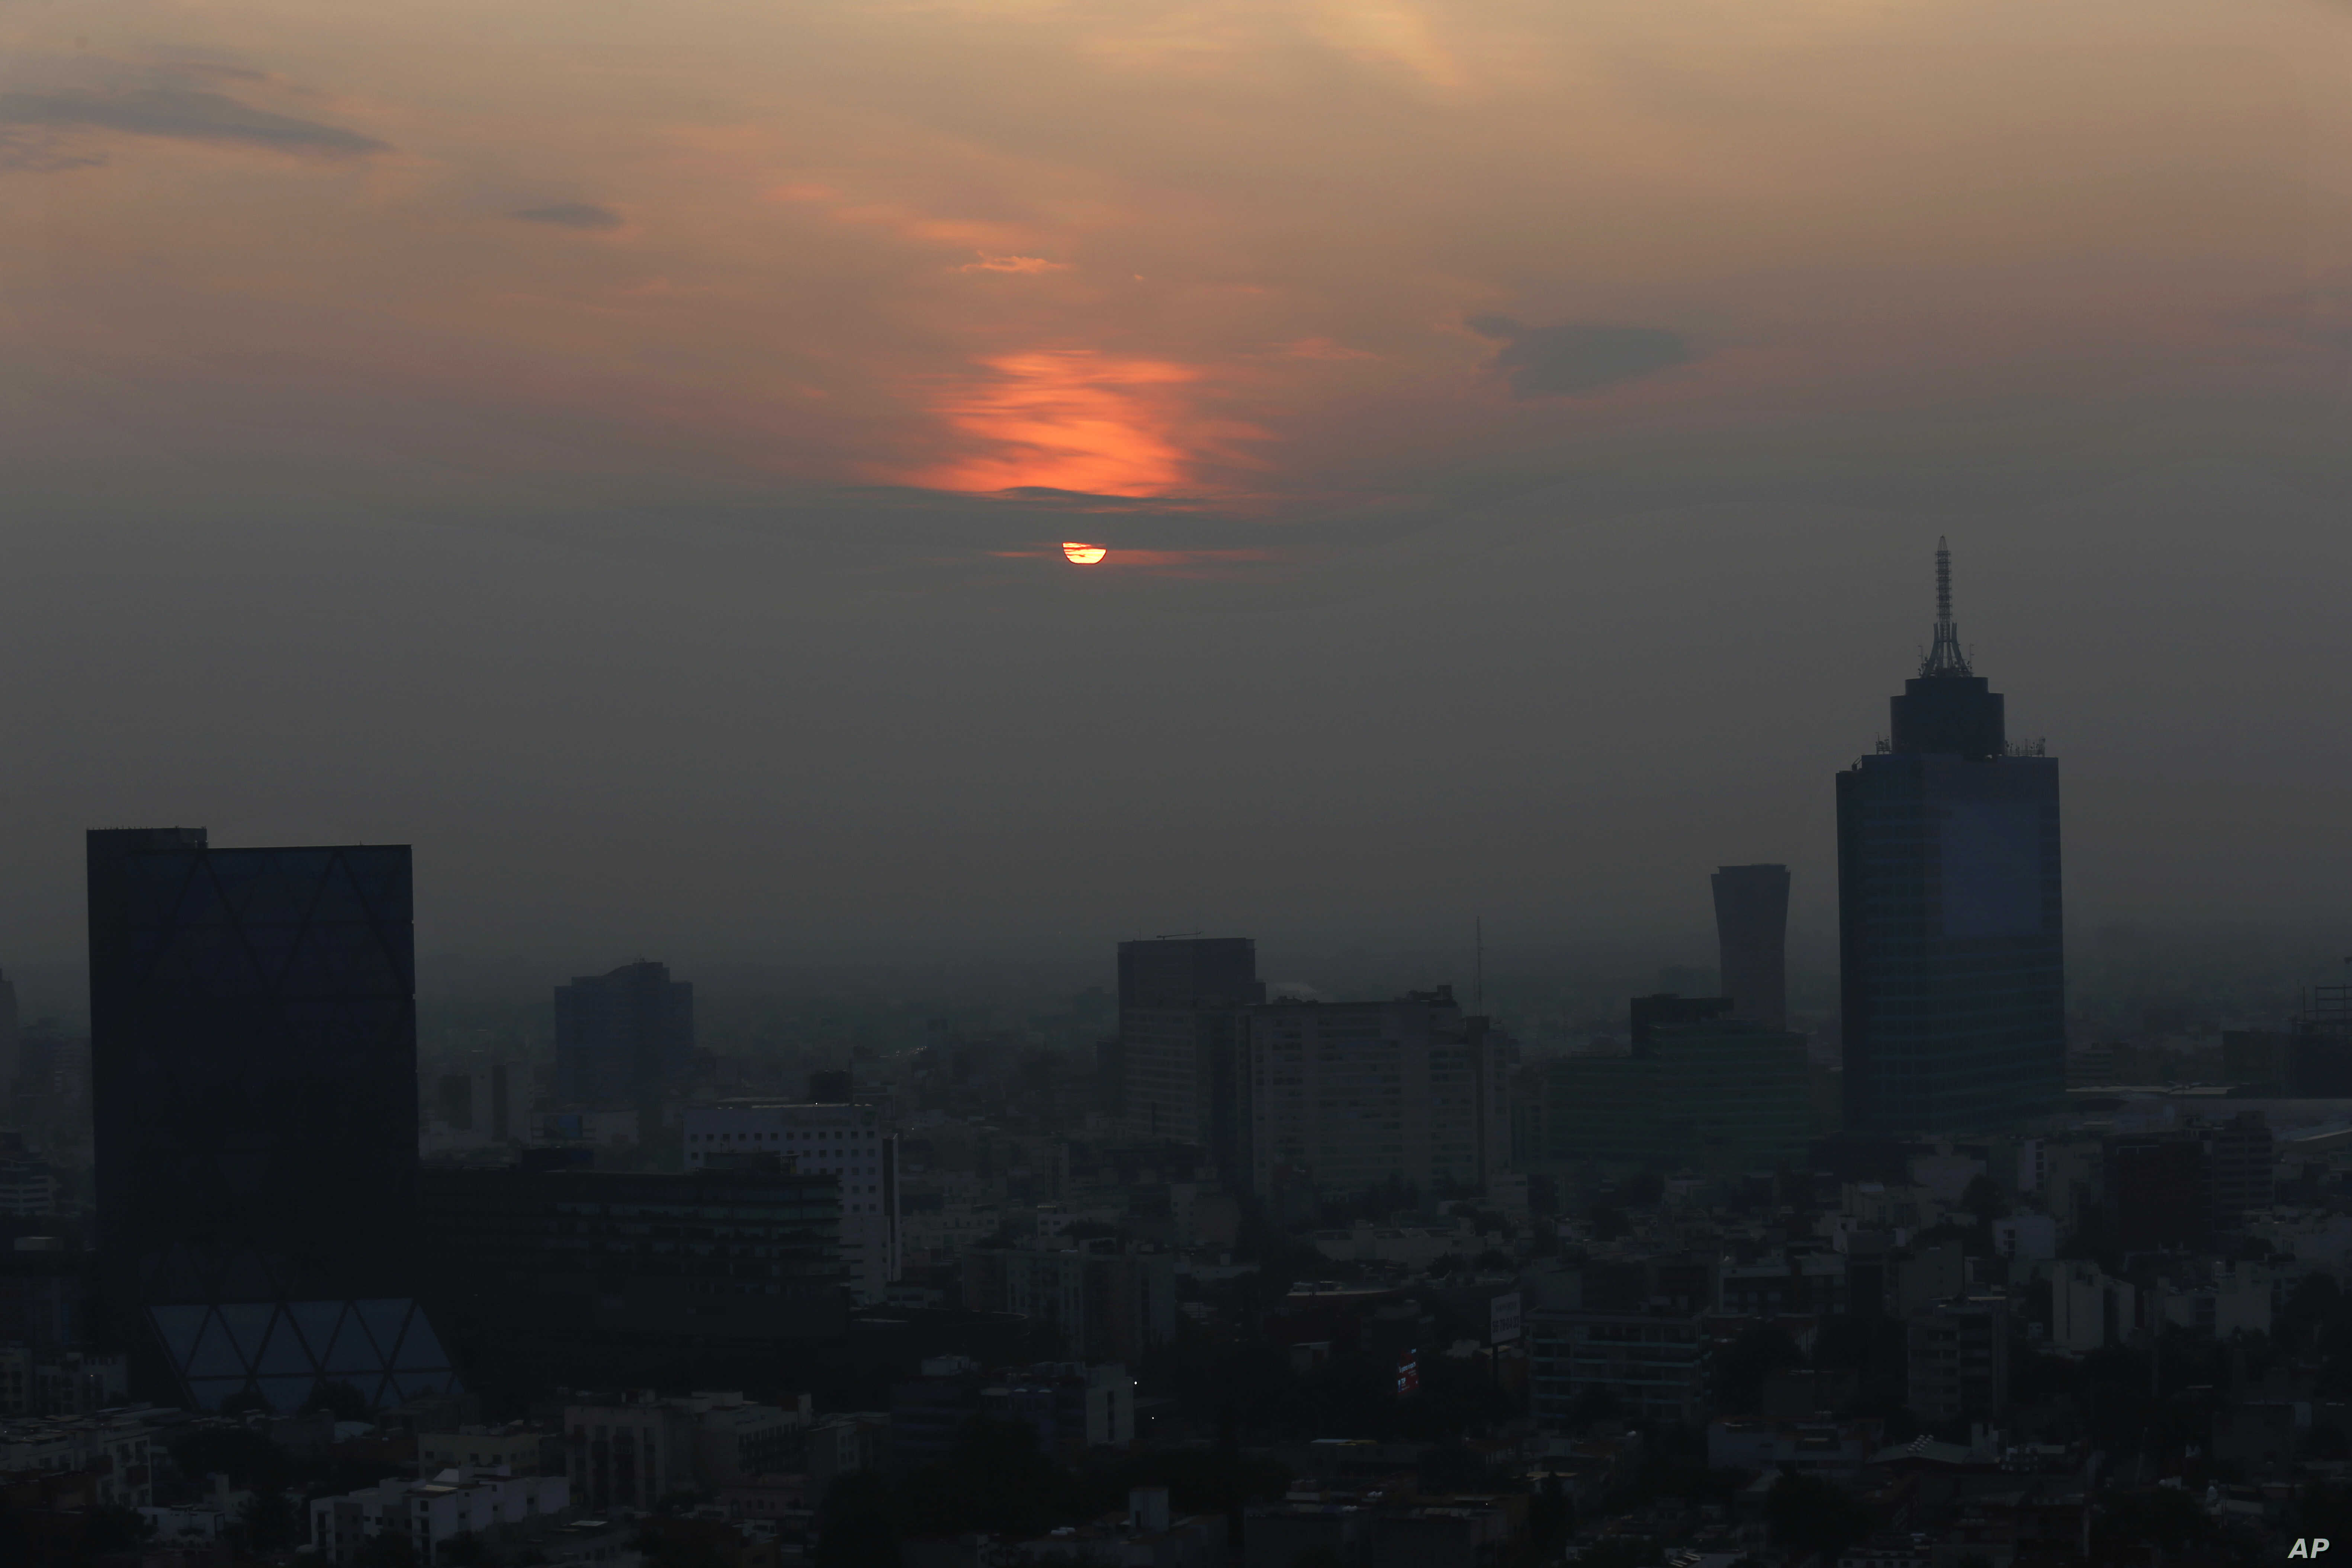 Smog blankets the sky in Mexico City, May 17, 2019. Both lower schools and universities were closed for a third straight day for the pollution alert triggered by smoke from ongoing brush fires combined with the lack of rain.